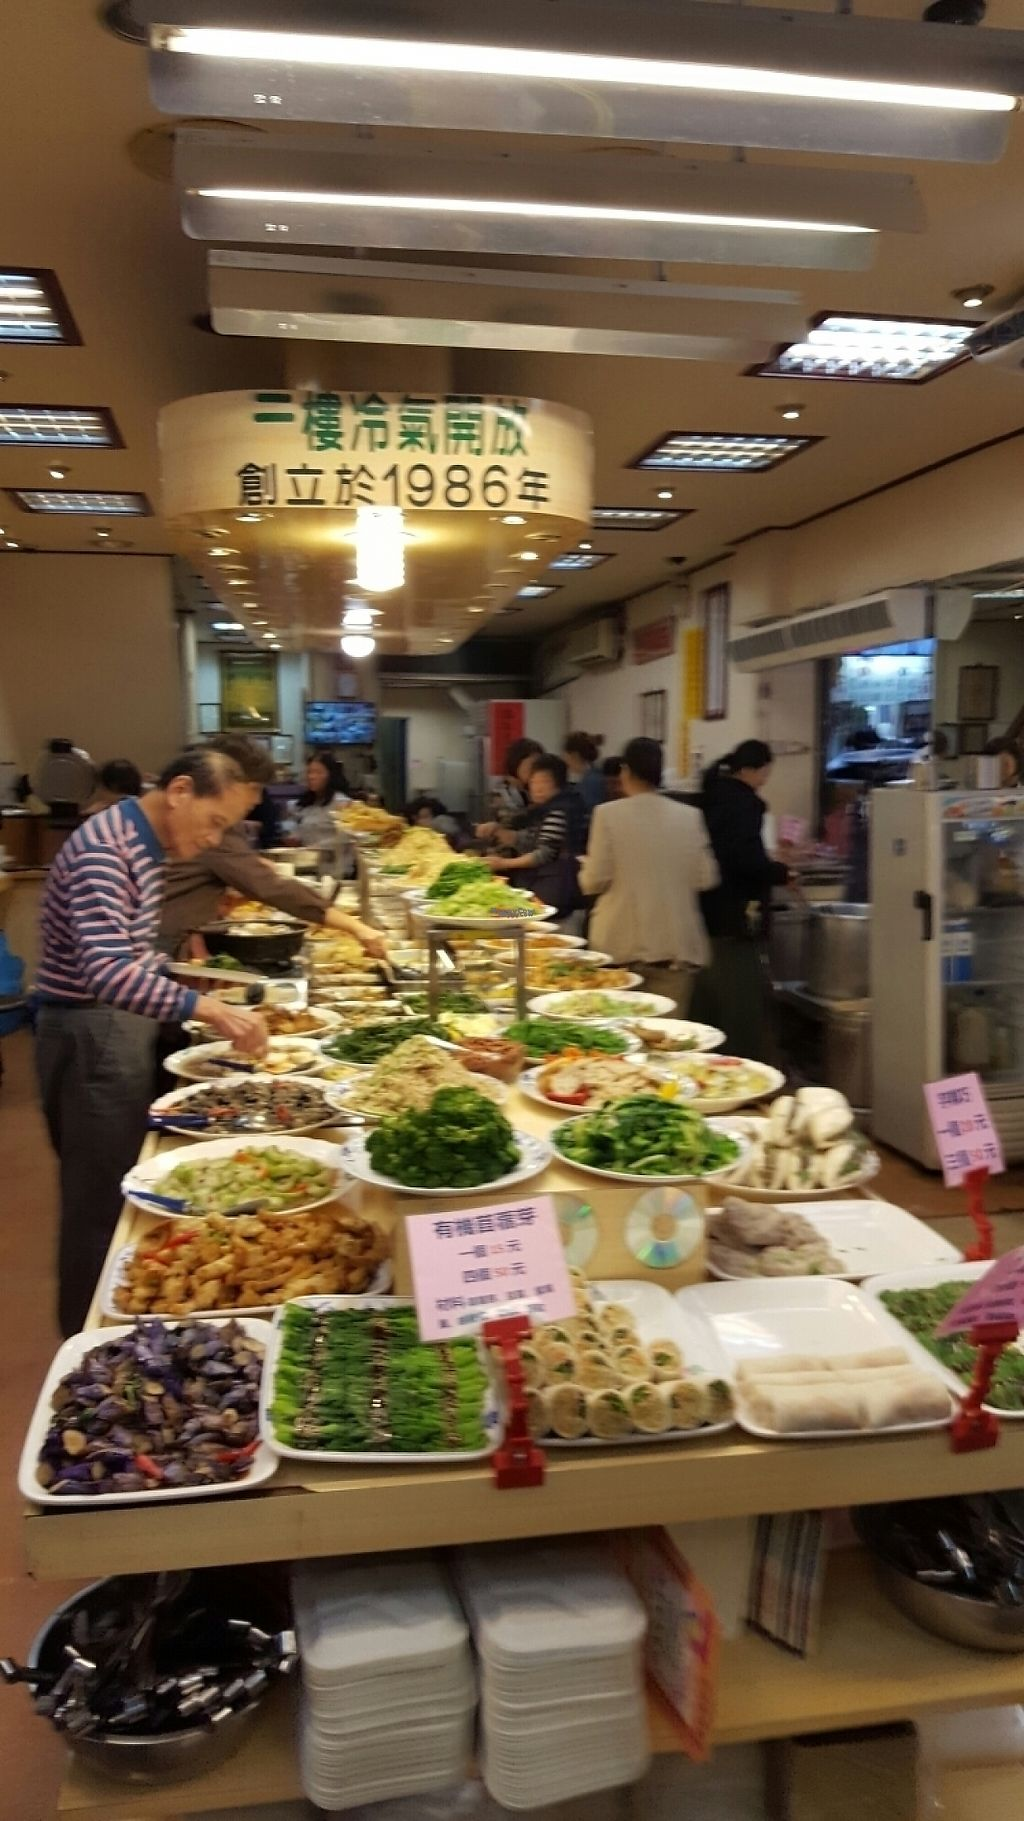 """Photo of Sun Like Restaurant  by <a href=""""/members/profile/Love%40Sunshine"""">Love@Sunshine</a> <br/>Vegetarian Spread <br/> December 3, 2016  - <a href='/contact/abuse/image/300/196886'>Report</a>"""